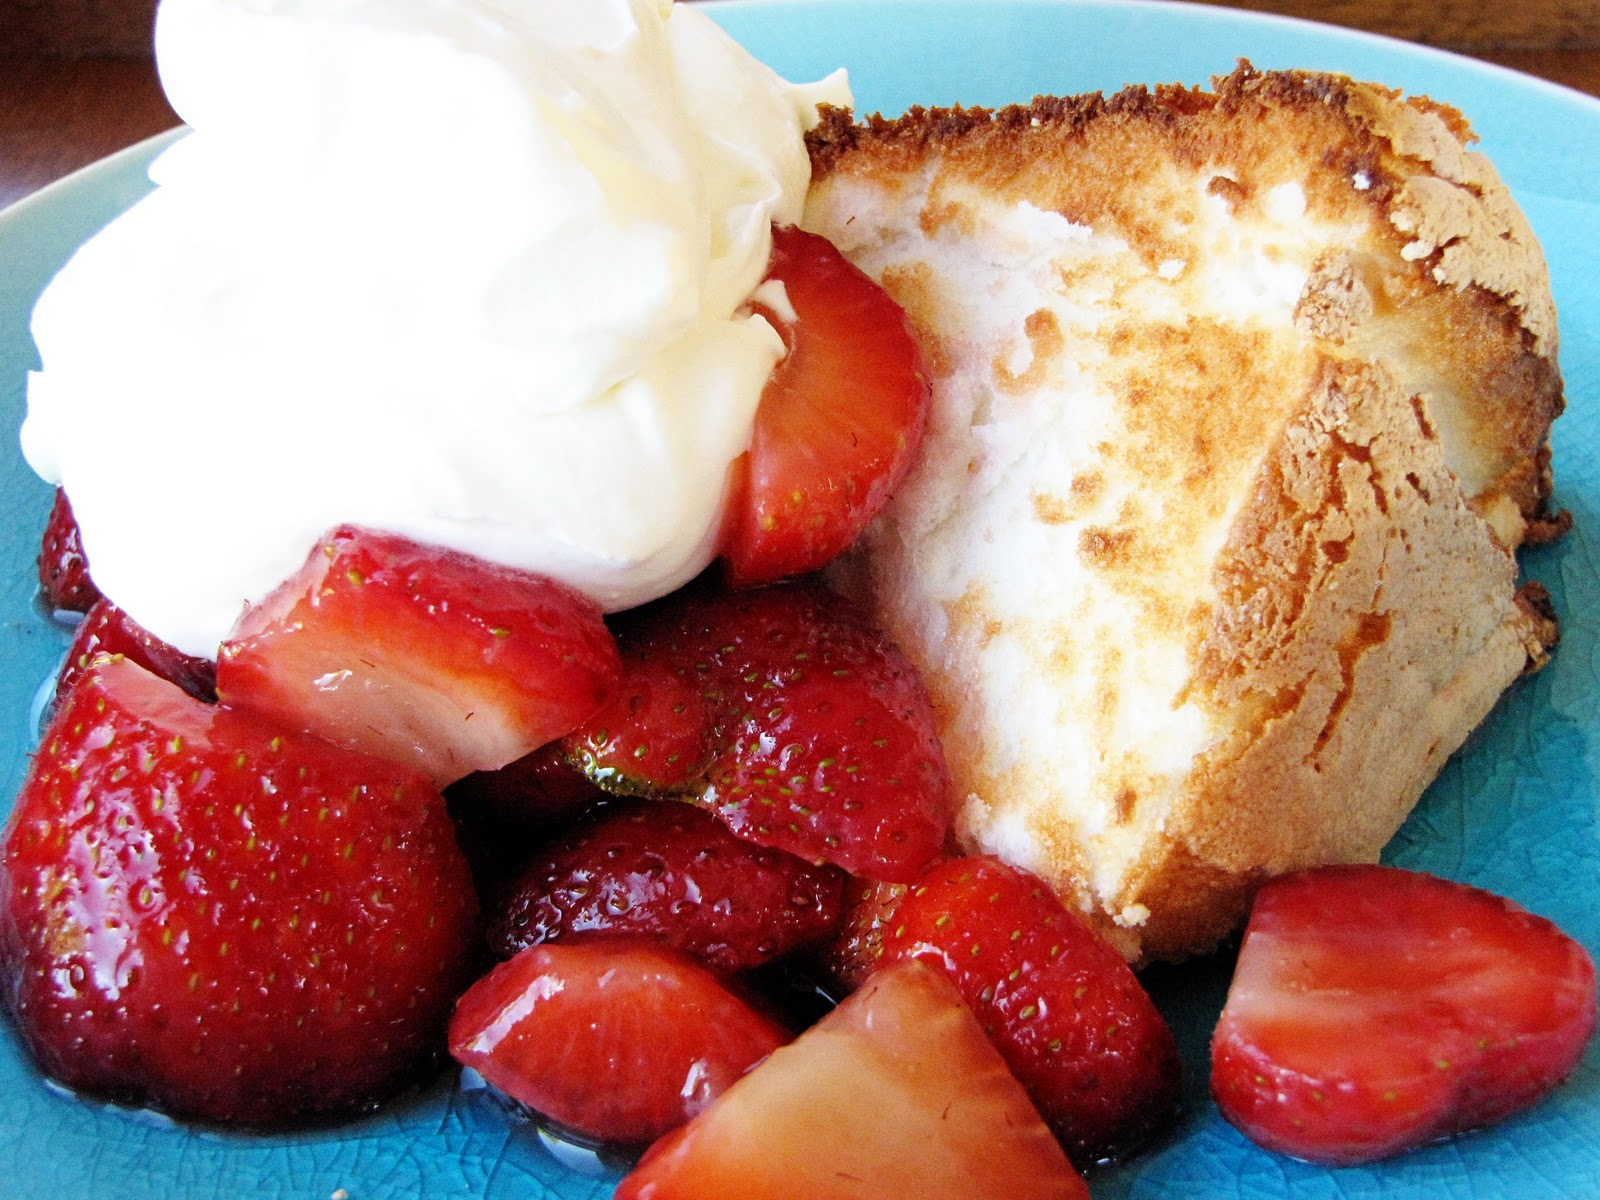 Strawberry angel food cake recipe easy dessert recipes strawberry angel food cake recipe forumfinder Images